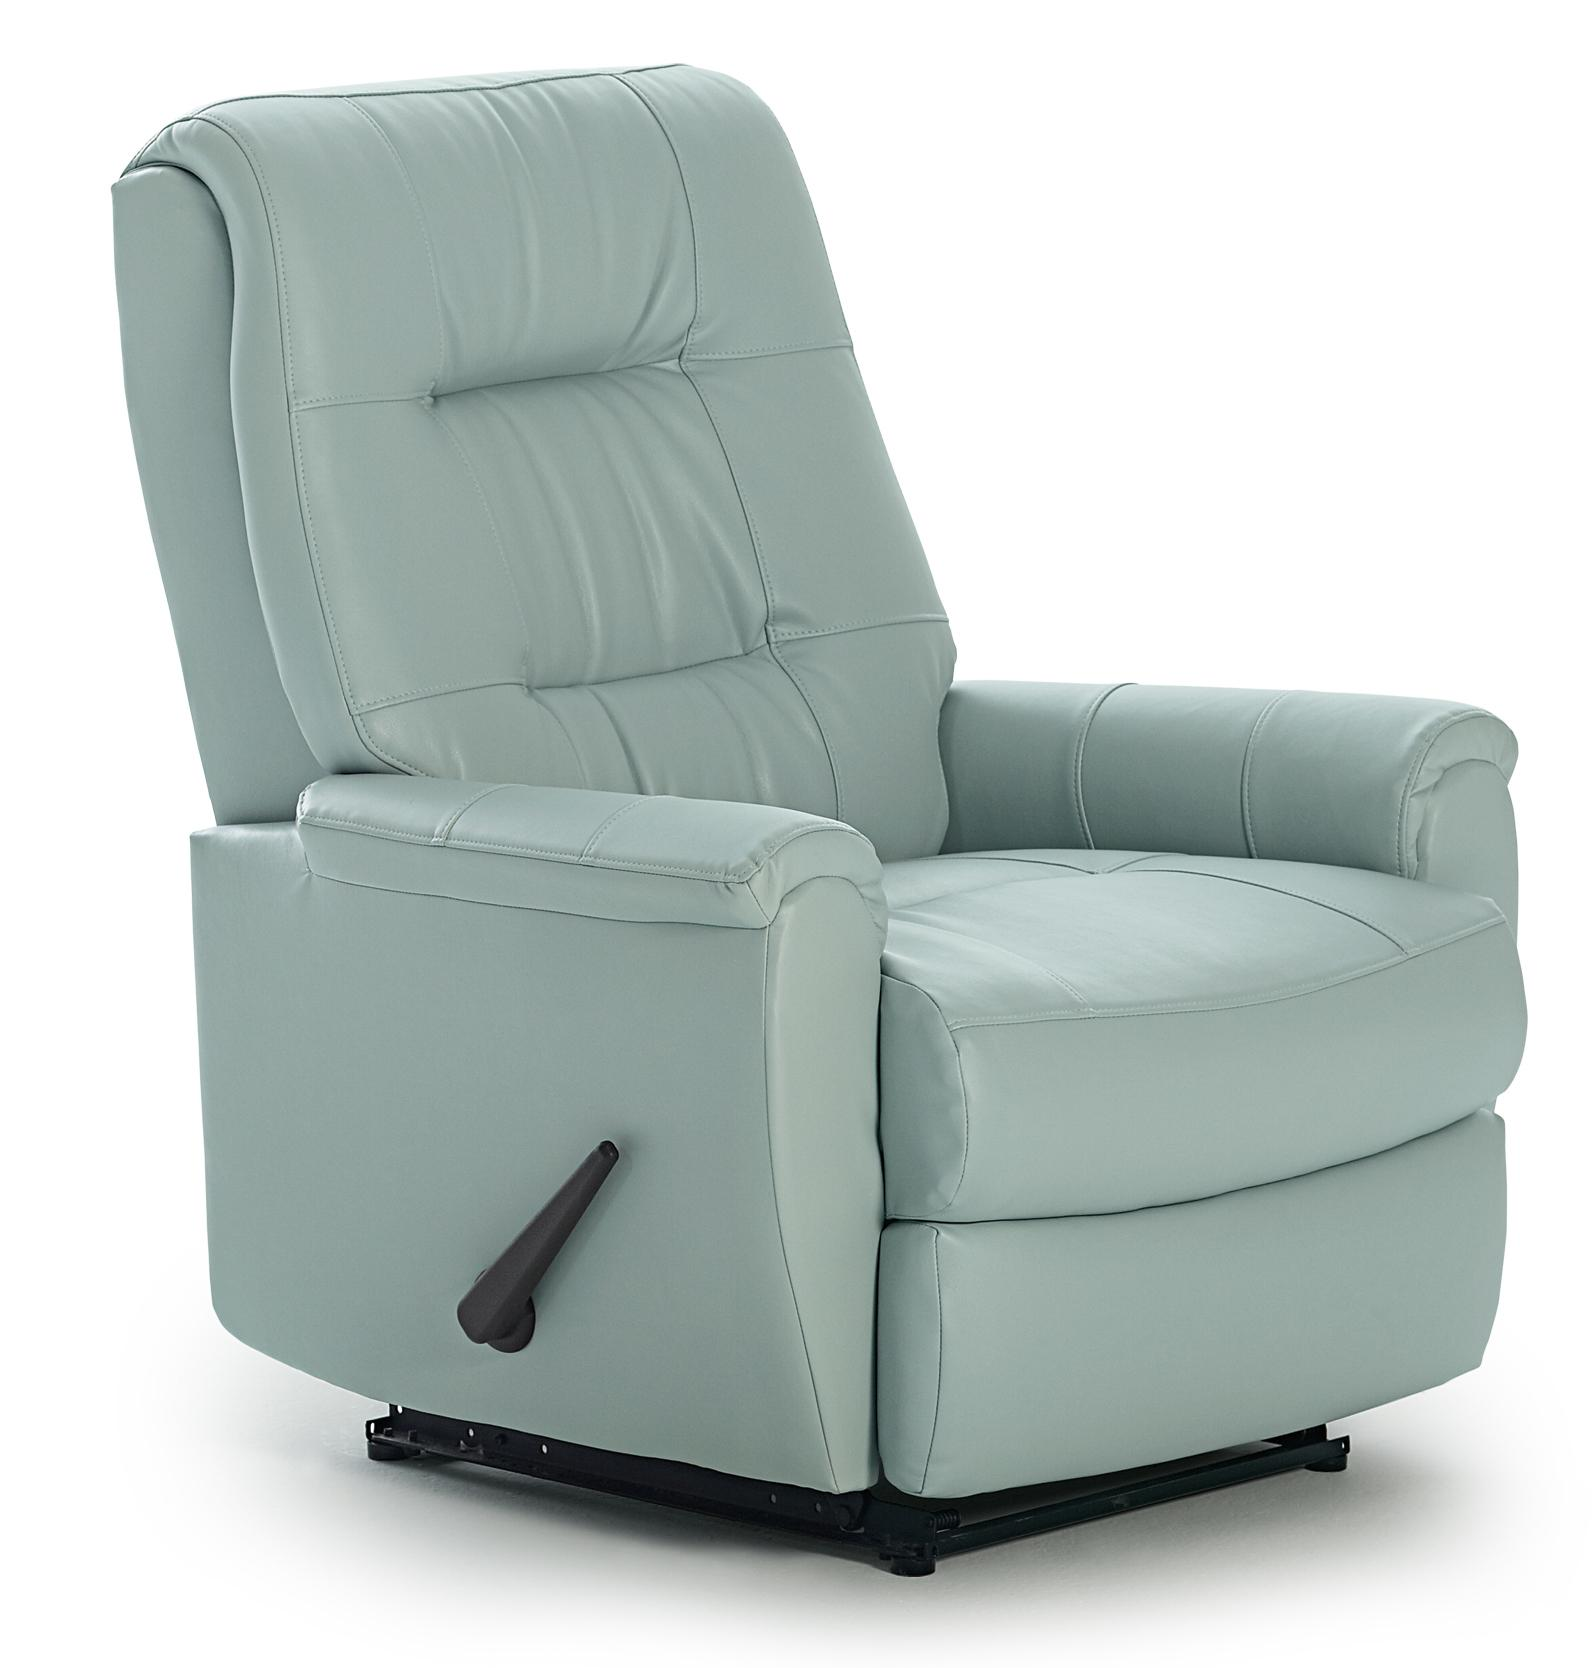 felicia swivel rocker recliner with button-tufted back BPAZQRW